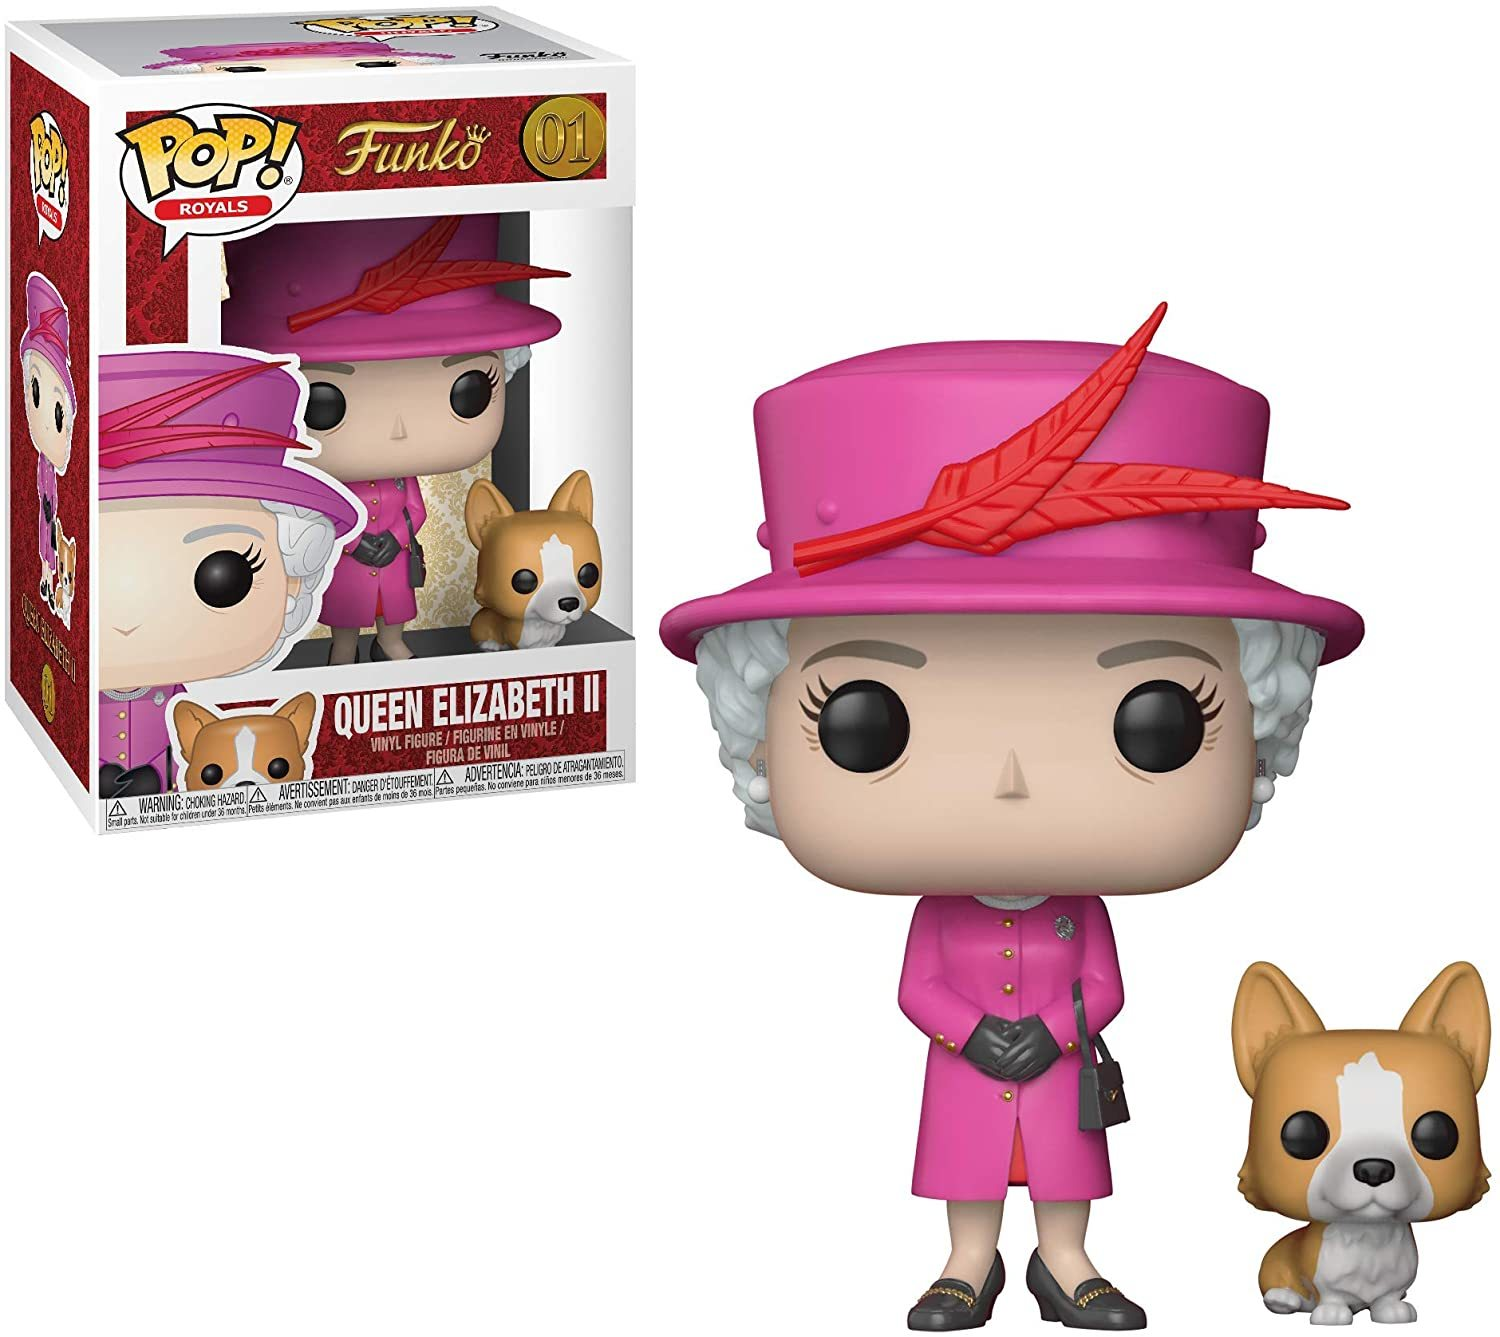 Фигурка Funko POP!: Royal Family - Queen Elizabeth II